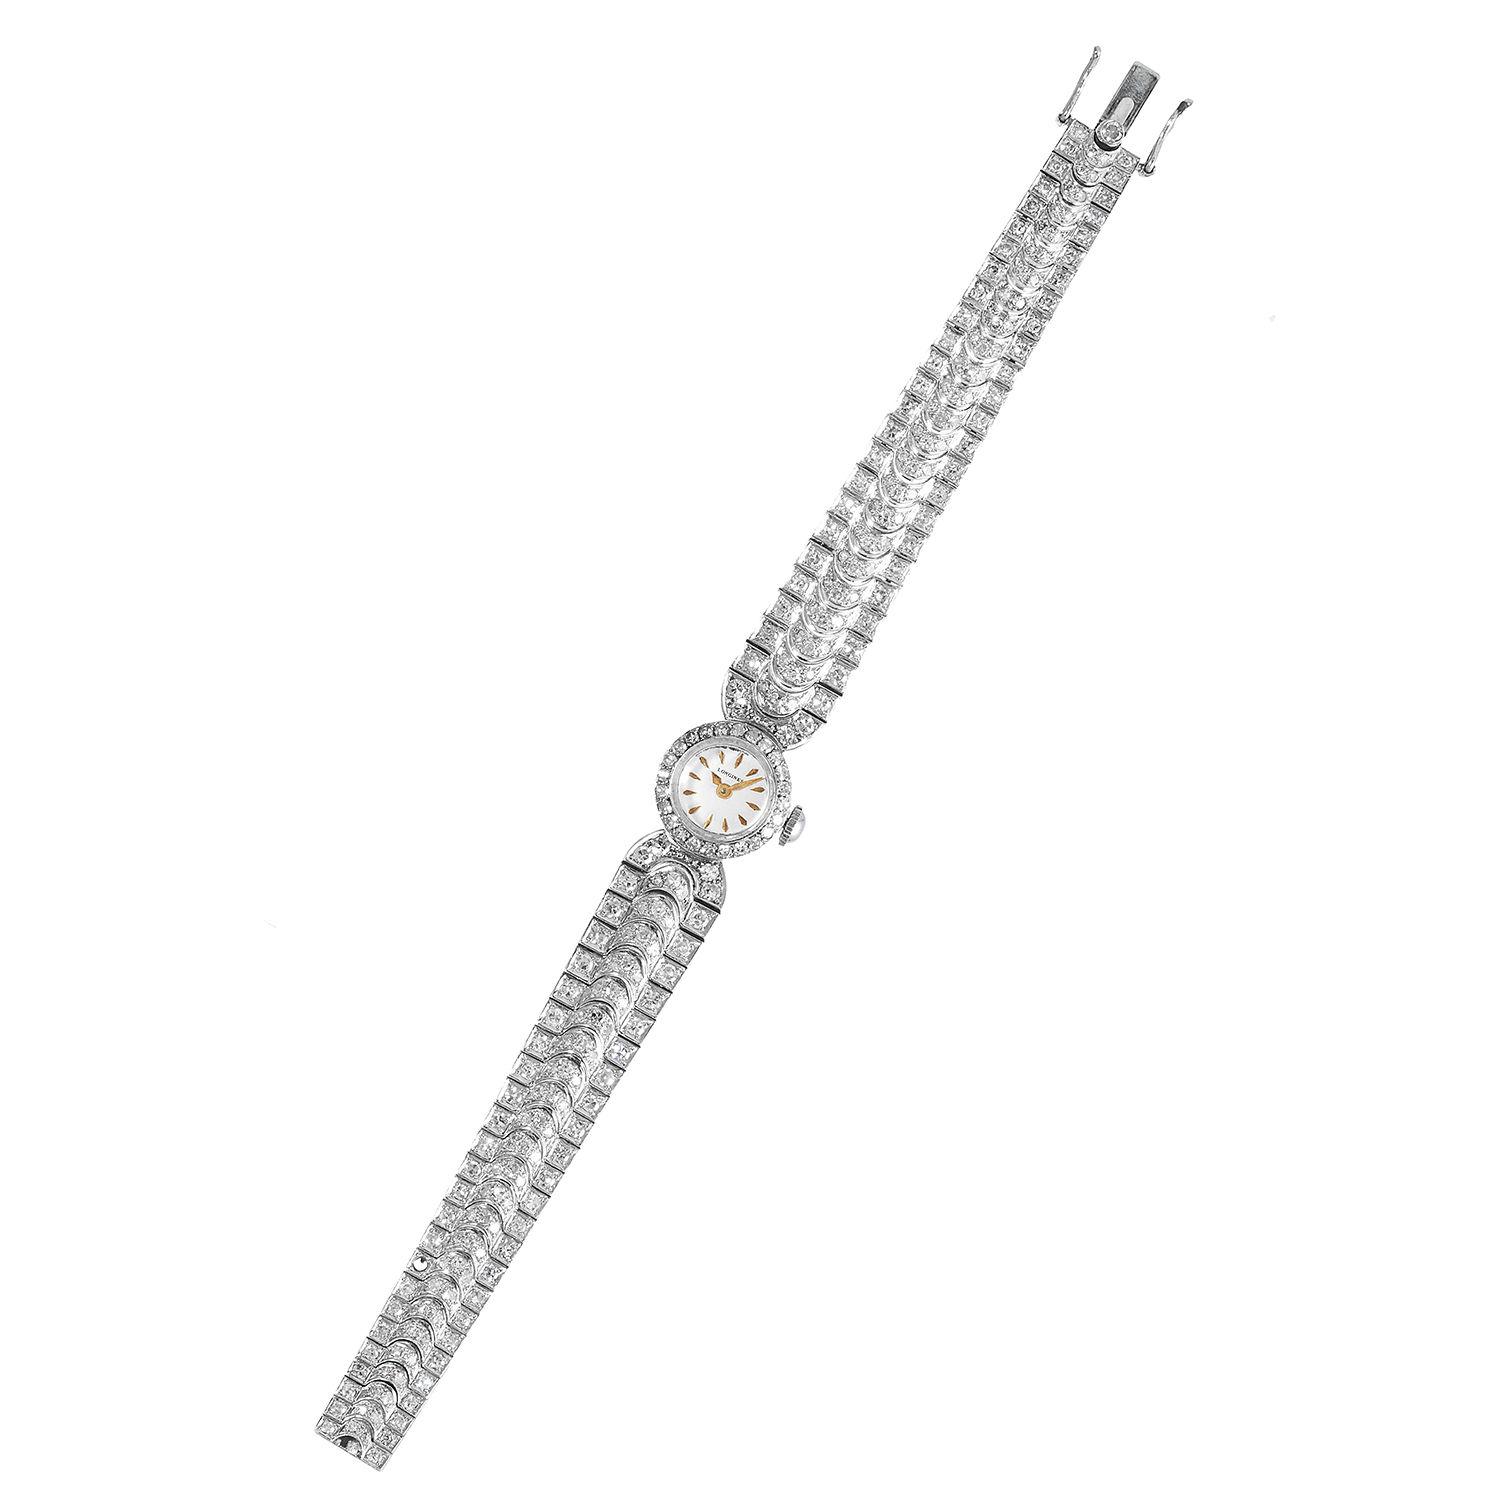 Los 457 - A DIAMOND JEWELLED WATCH, LONGINES in platinum, the strap jewelled with round cut diamonds with